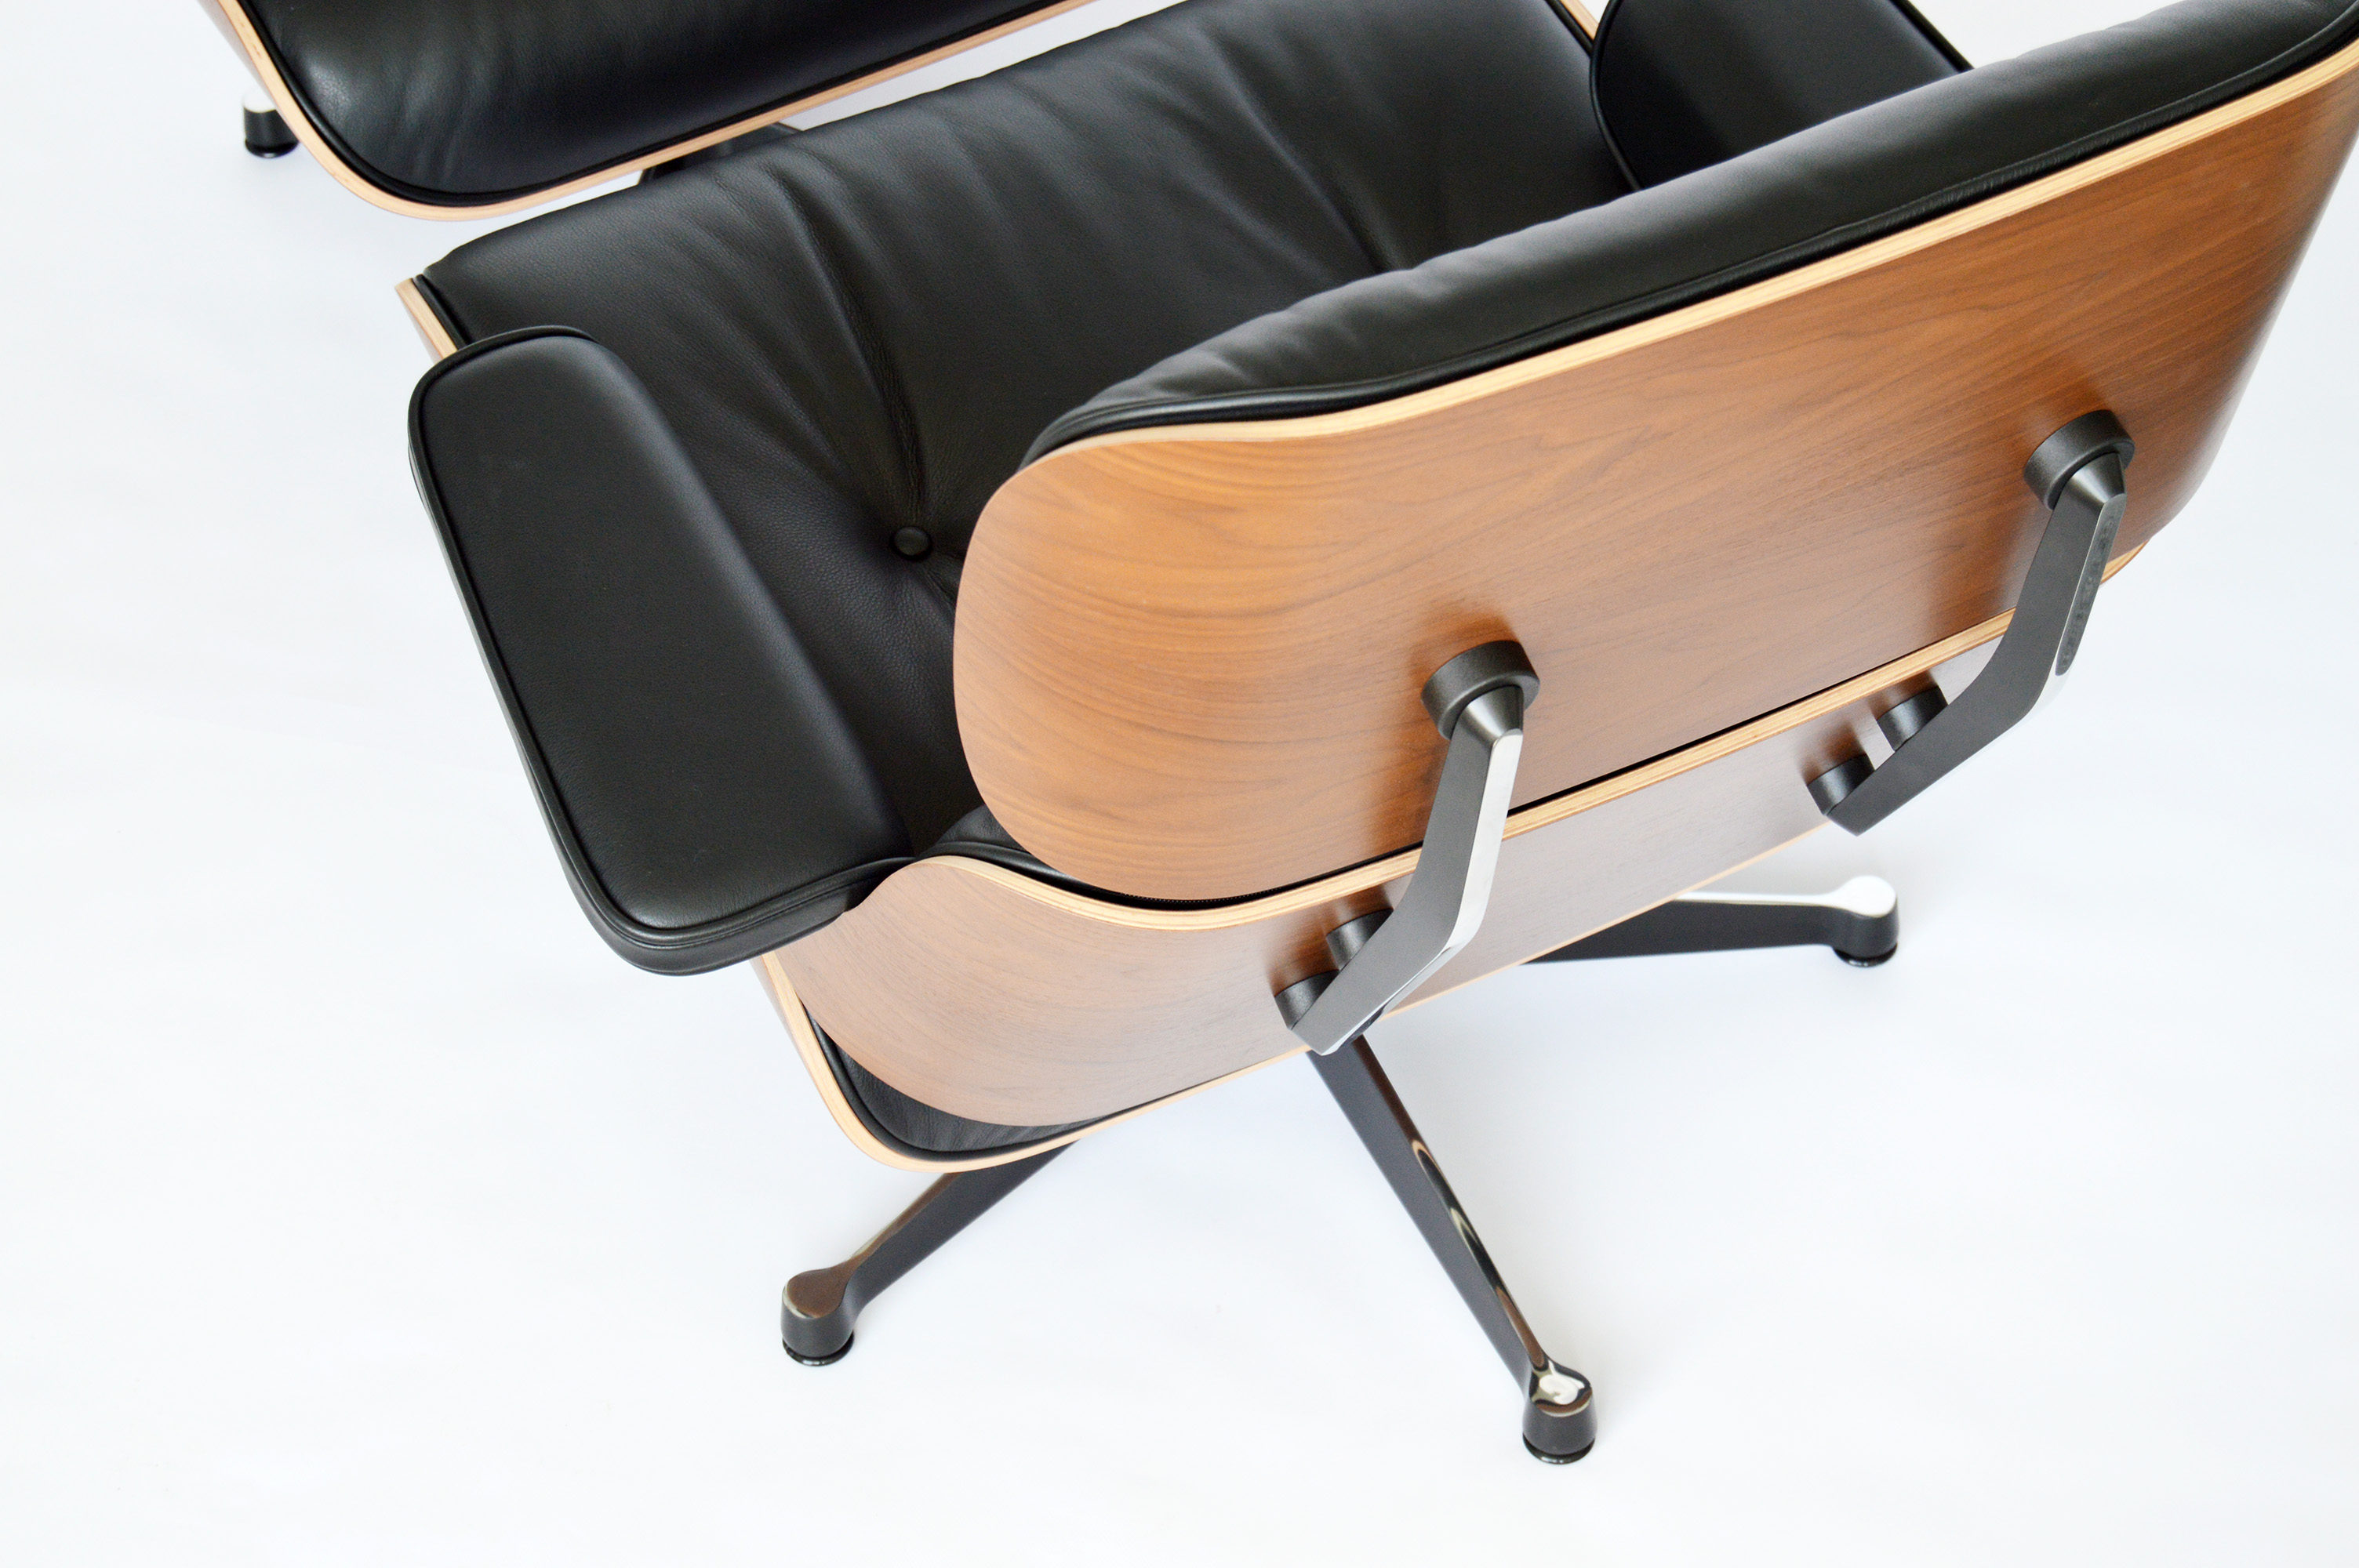 Vitra eames lounge chair im design sortiment von midmodern for Vitra lounge chair nachbau